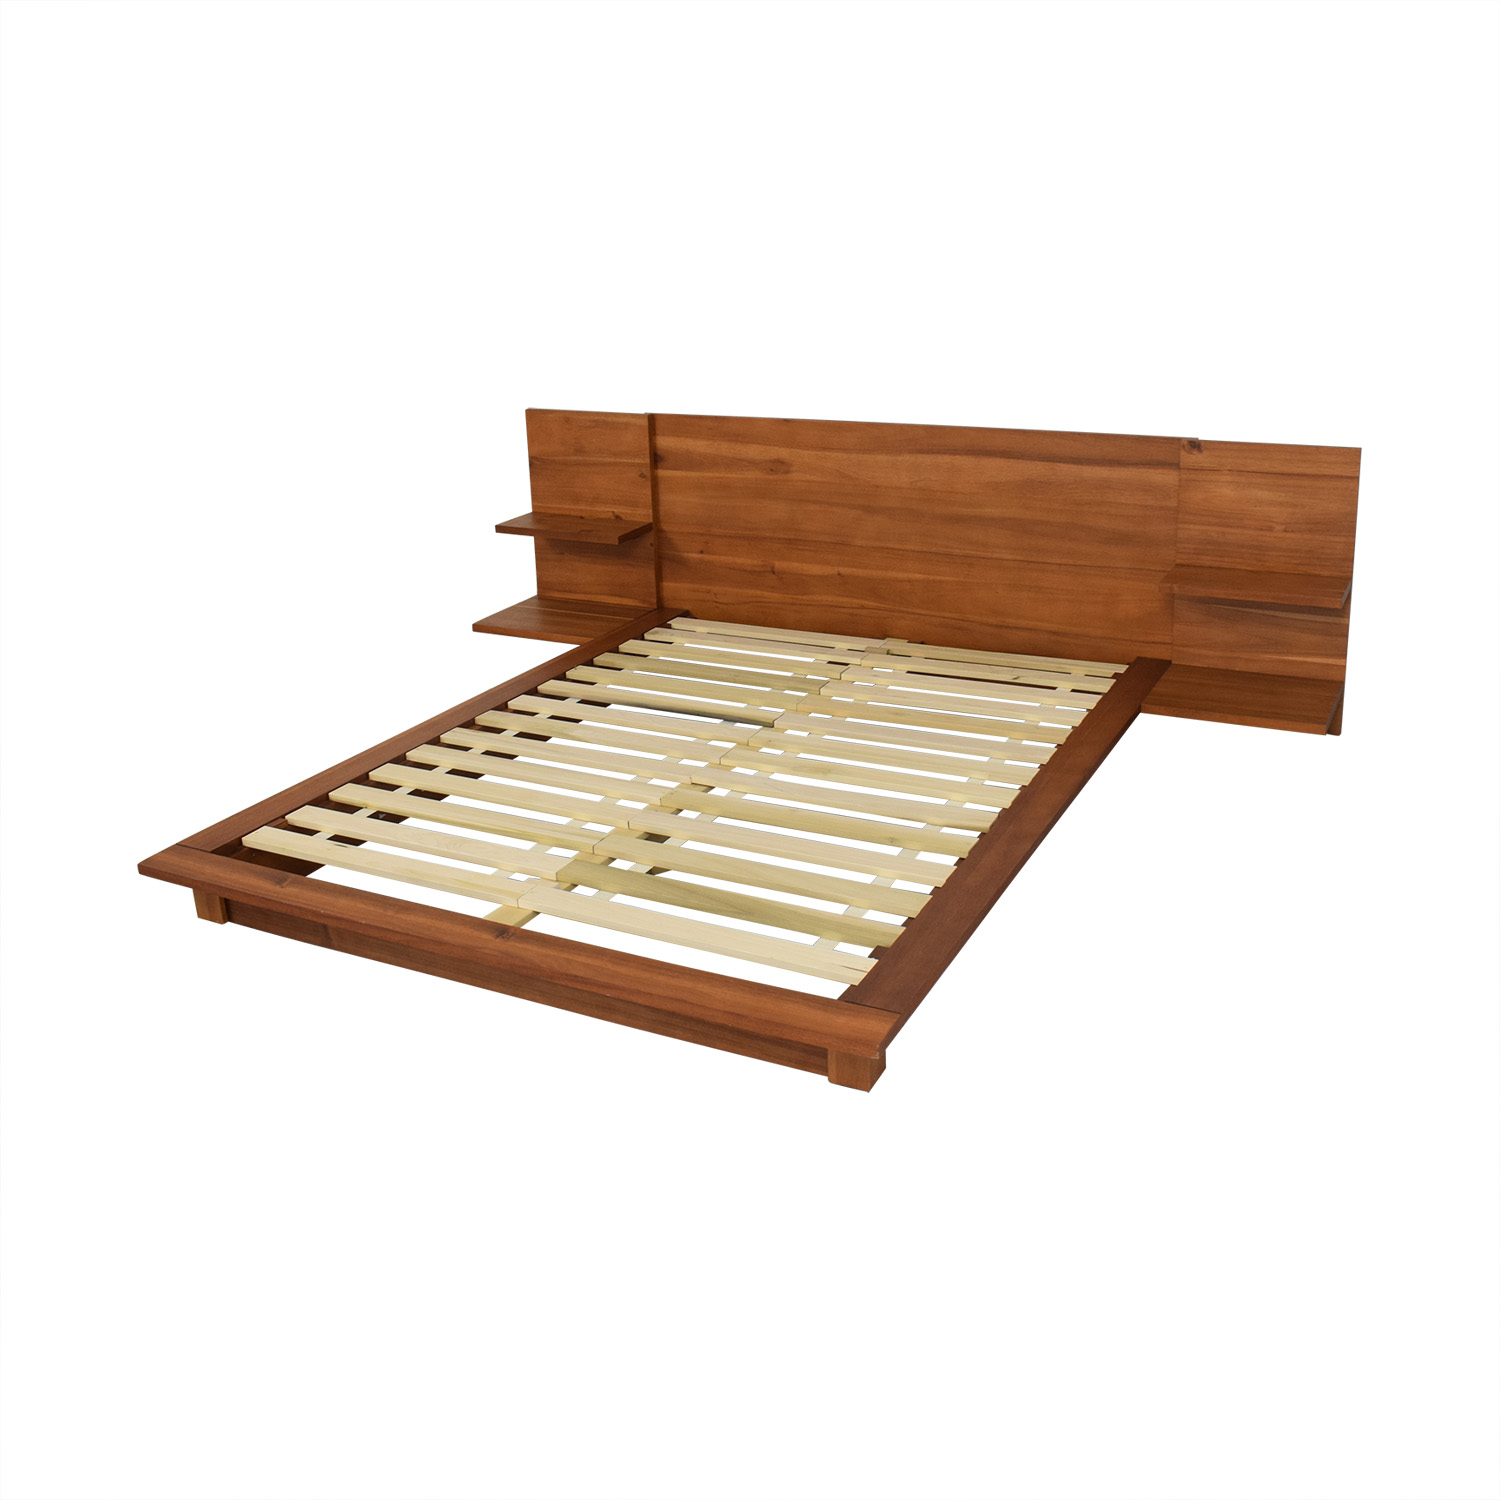 CB2 CB2 Andes Acacia Full Bed Frame second hand